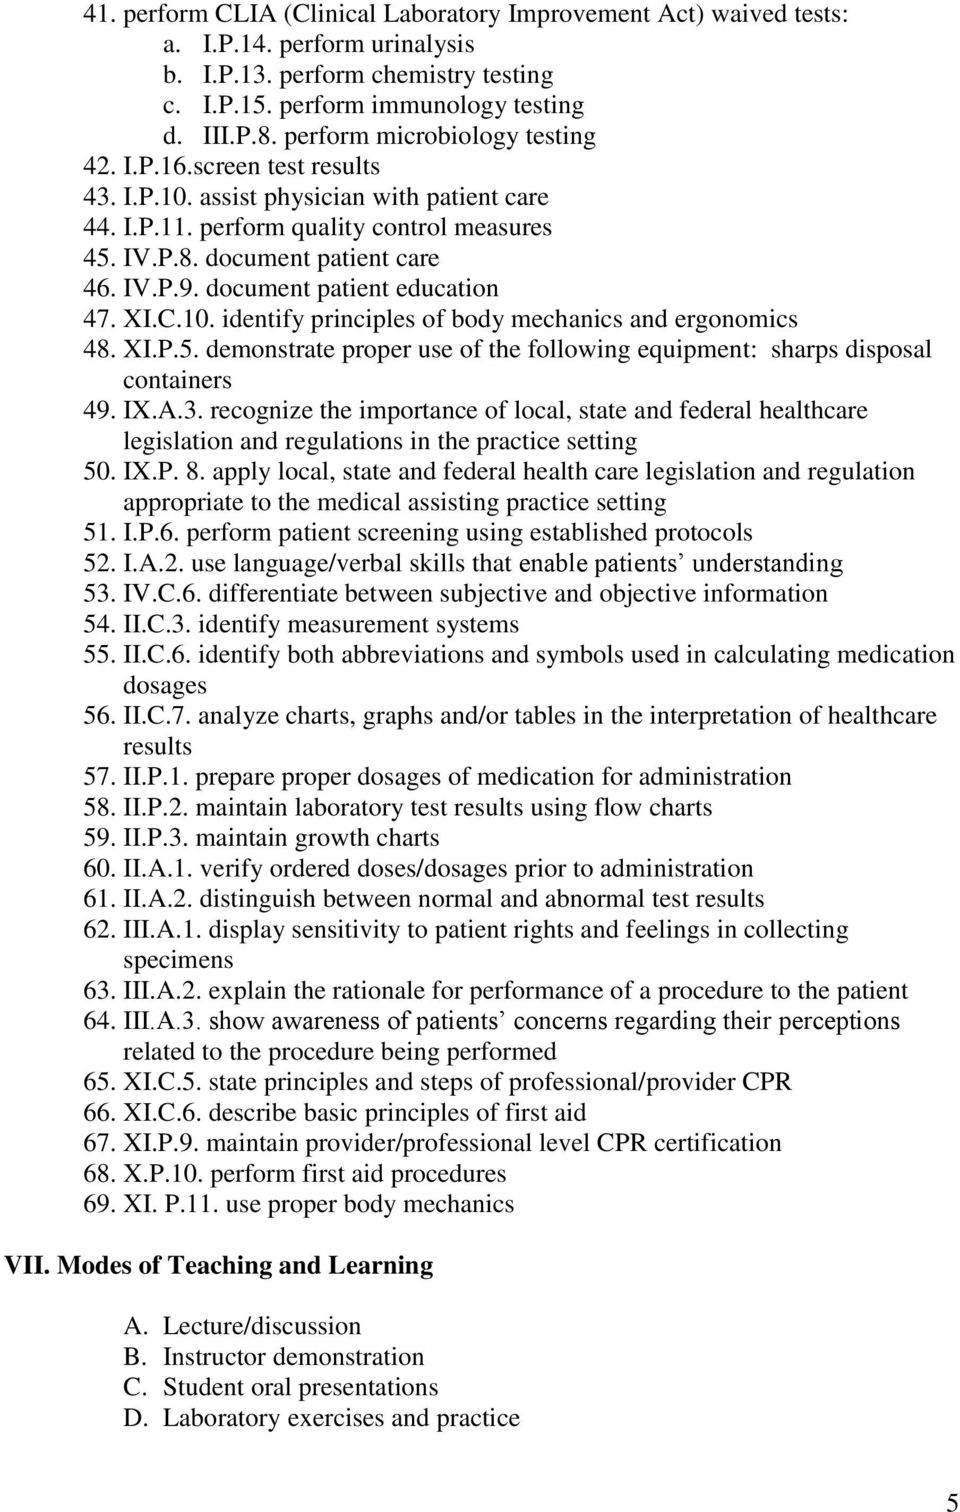 document patient education 47. XI.C.10. identify principles of body mechanics and ergonomics 48. XI.P.5. demonstrate proper use of the following equipment: sharps disposal containers 49. IX.A.3.